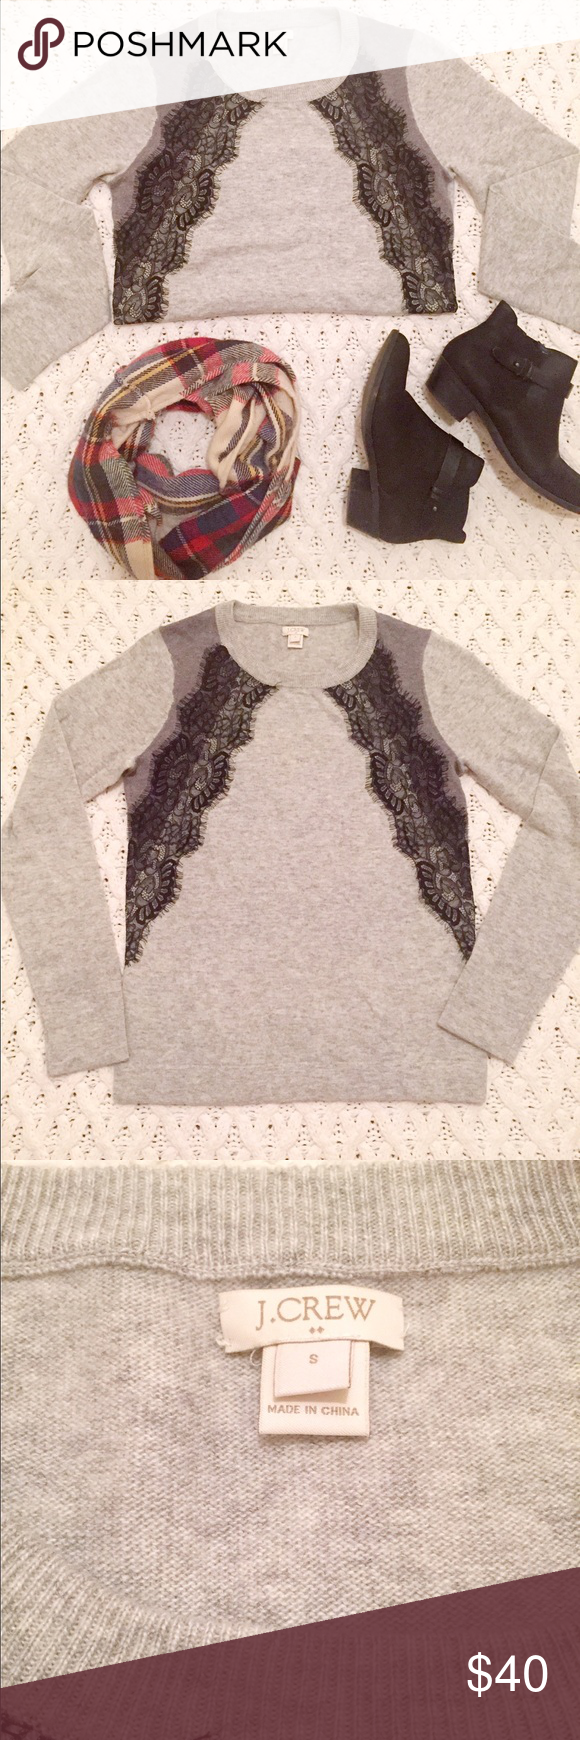 🍁🍂J. Crew Sweater with Lace Overlay Gorgeous LIKE NEW J. Crew sweater with lace overlay. Two tone light and dark grey with black lace overlay. Absolutely no wear! Looks amazing and will be perfect for fall! J. Crew Sweaters Crew & Scoop Necks